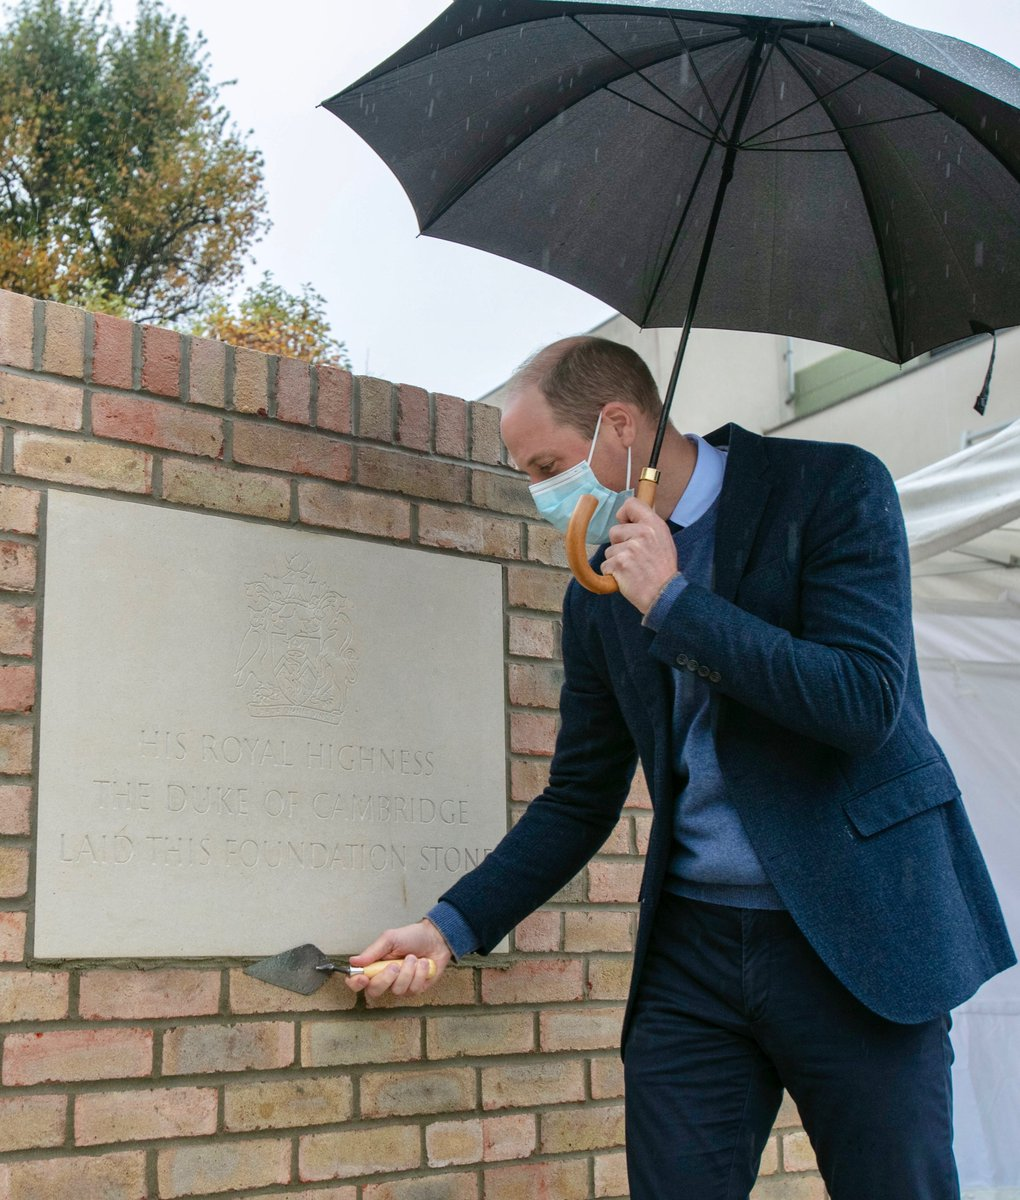 30 years after Diana, Princess of Wales, laid a ceremonial foundation stone to commemorate the building of the Chelsea Wing at @royalmarsden in Chelsea, Prince William visited The Royal Marsden in Sutton to mark the start of construction for the Trust's Oak Cancer Centre. https://t.co/lycnCdLDgv